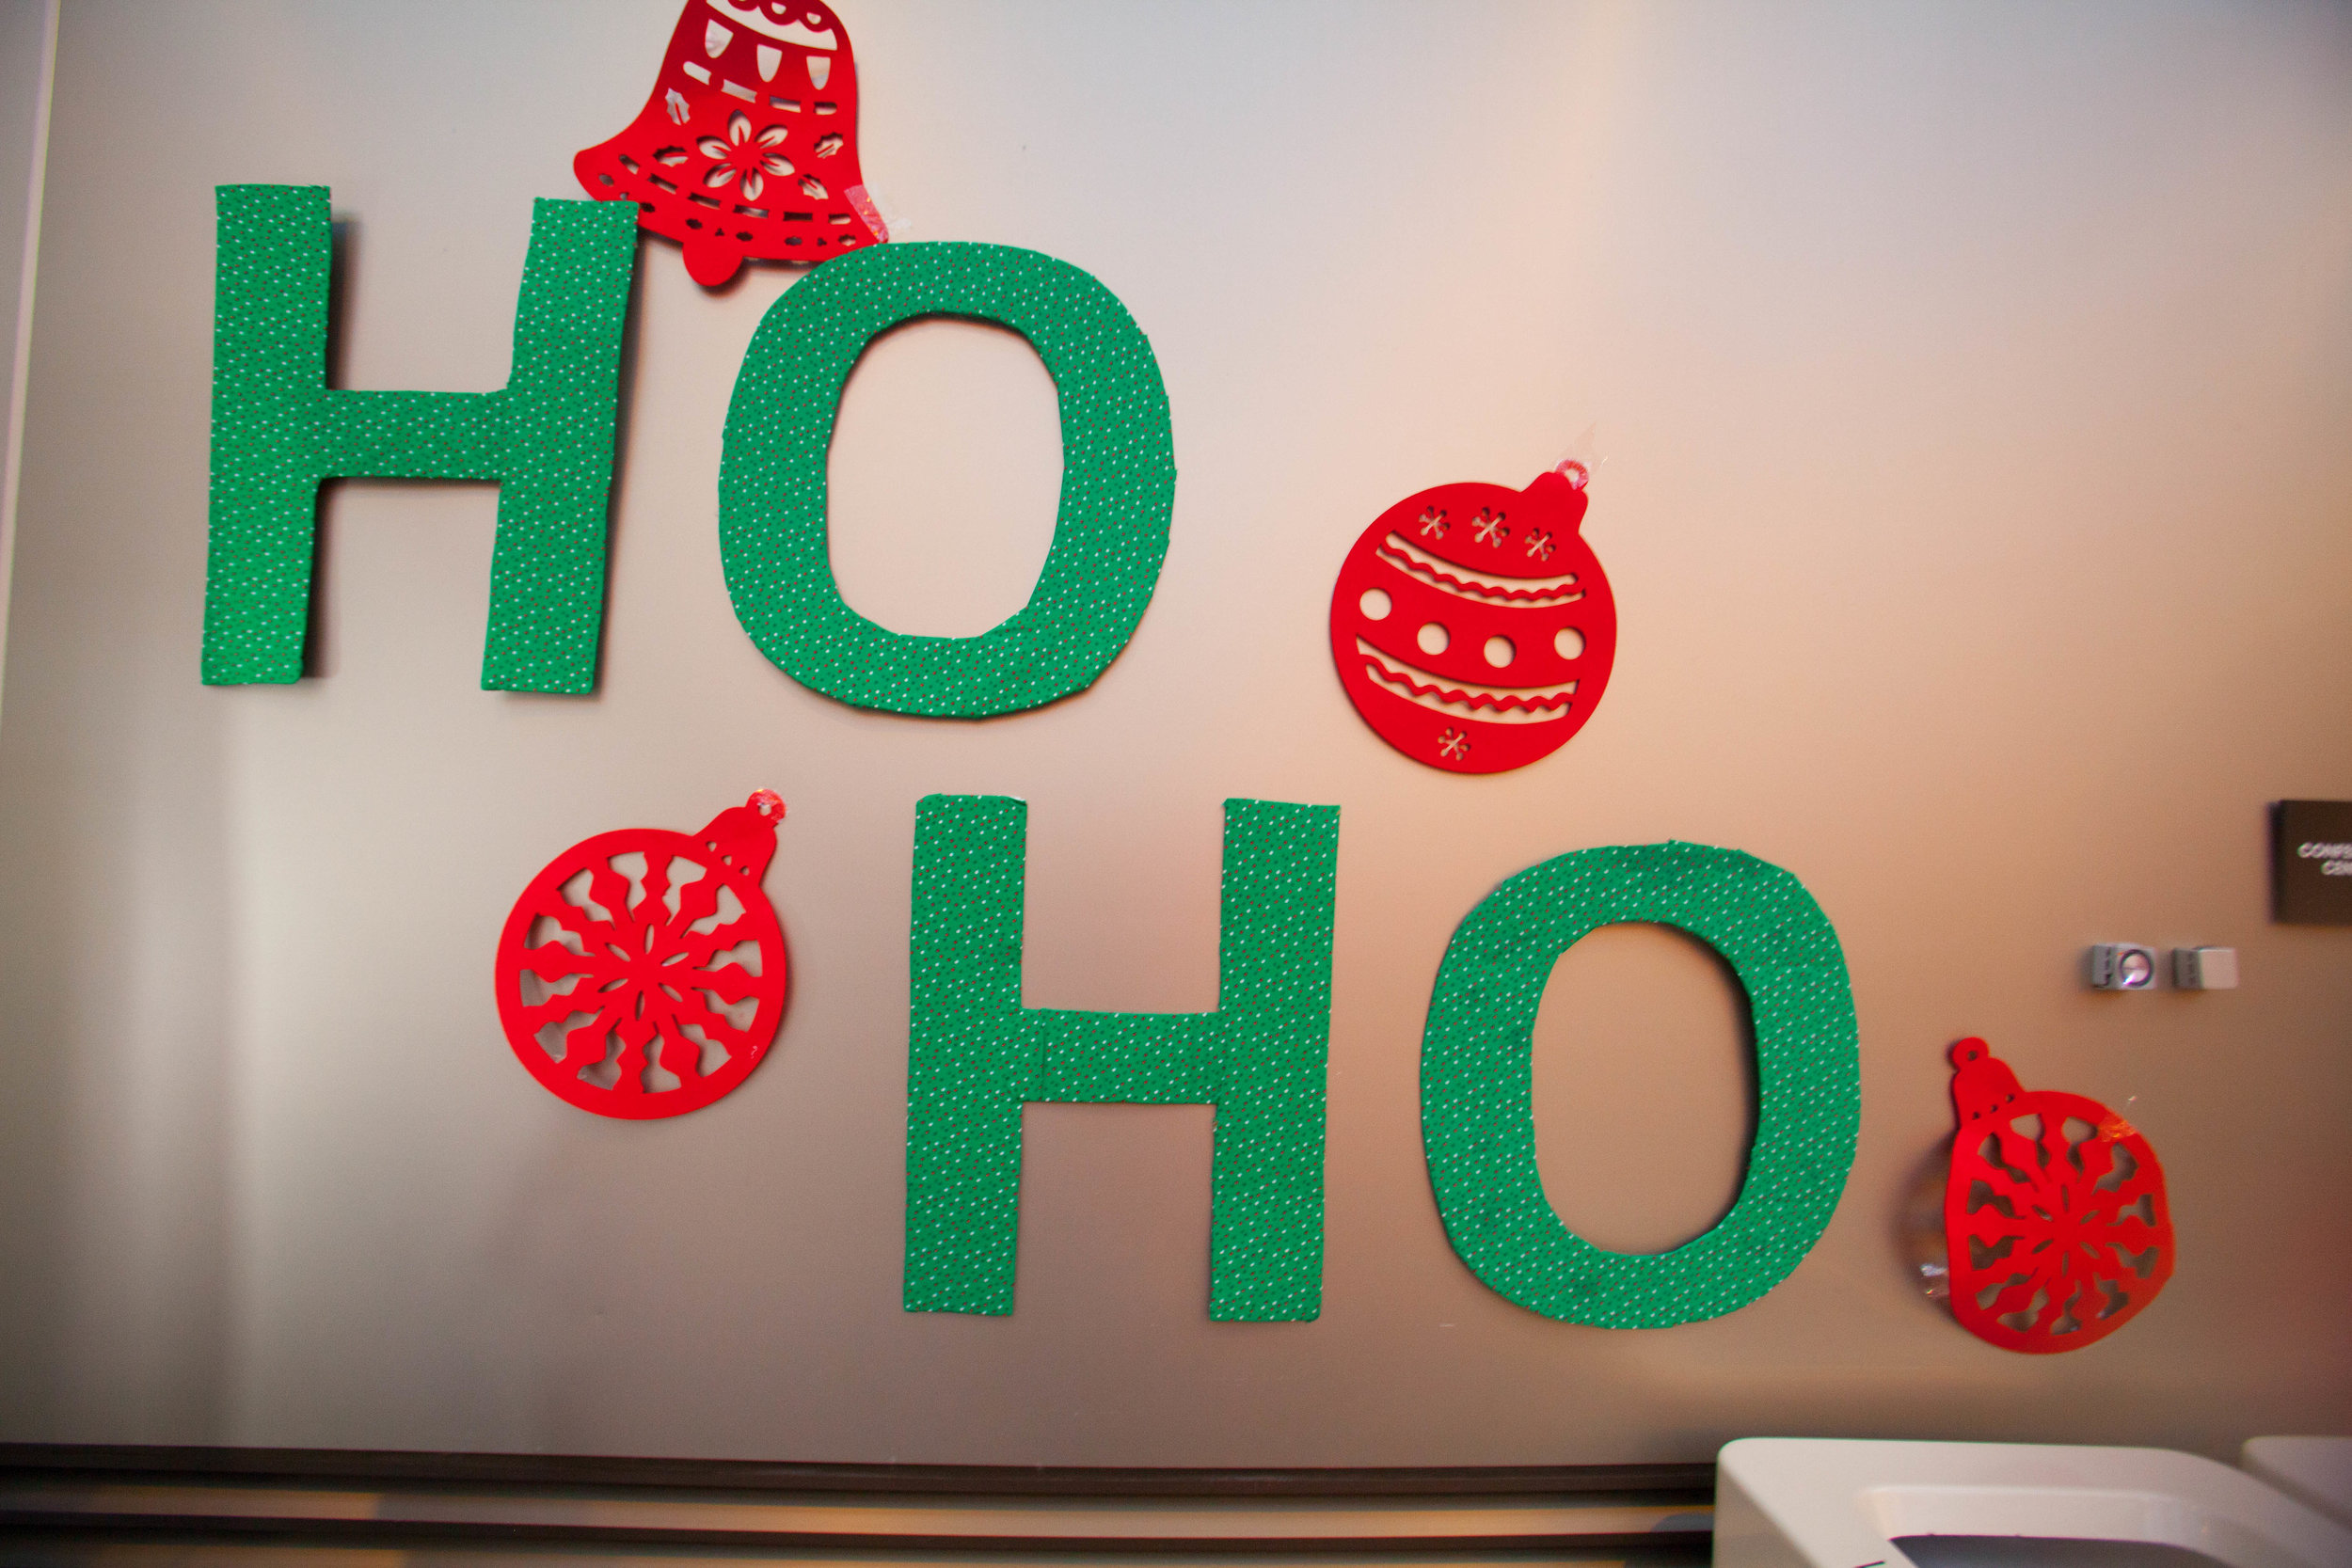 hope-holiday-party-2016_31567469676_o.jpg